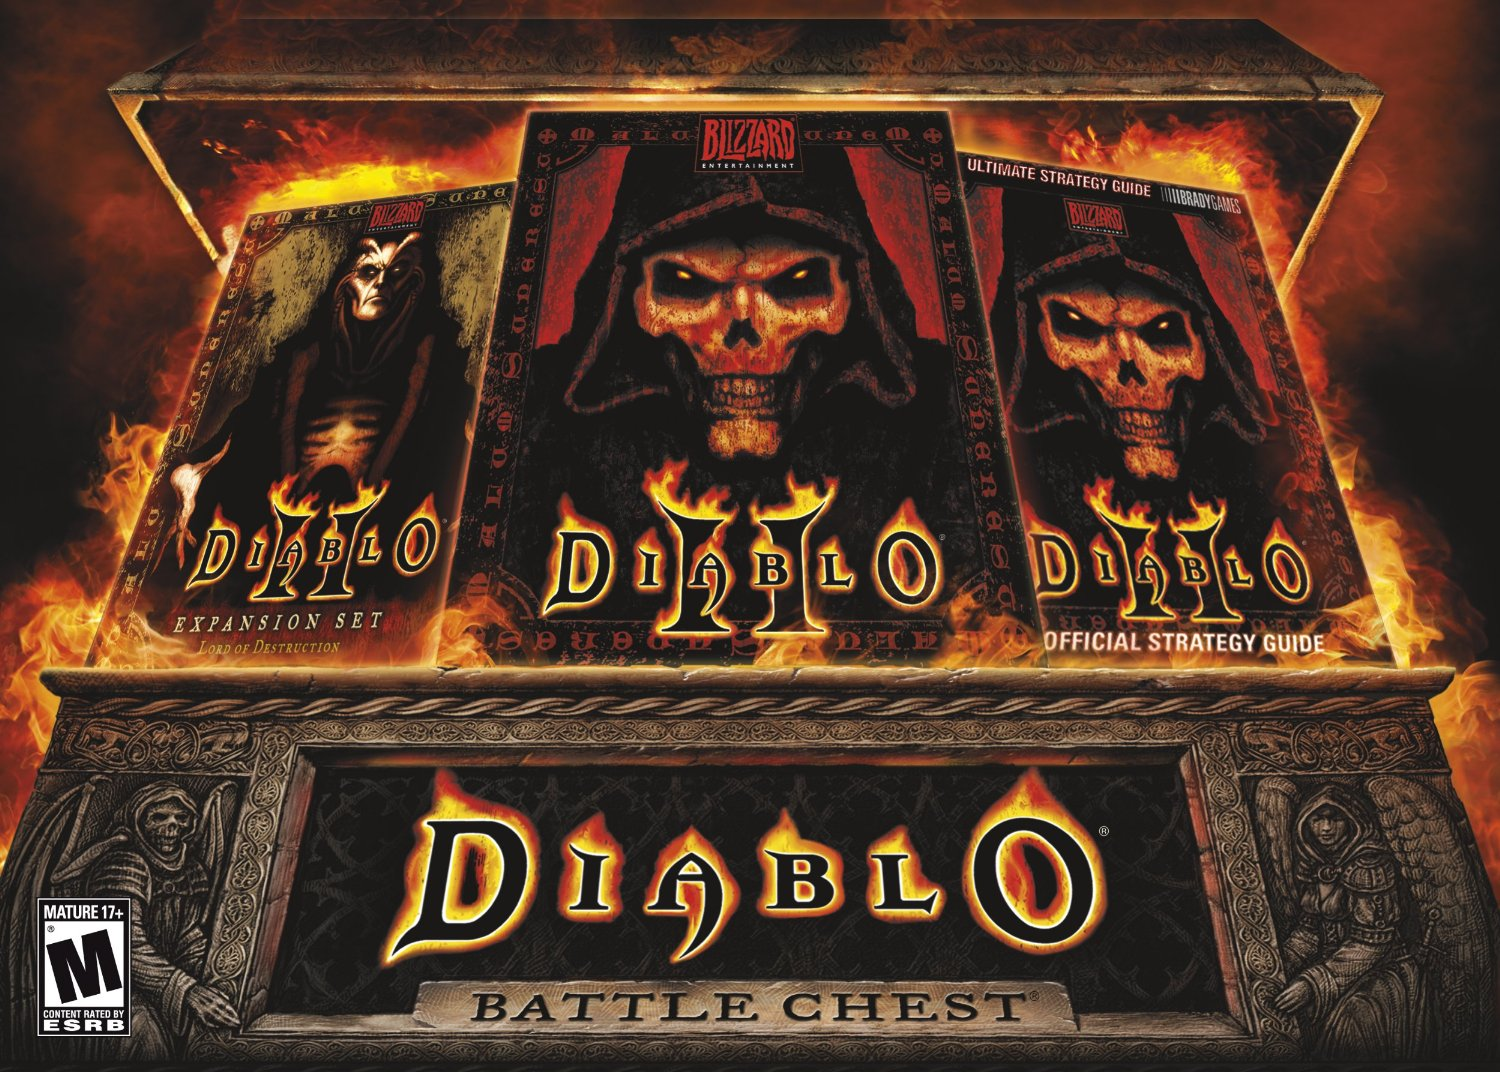 diablo-ii-battle-chest-box